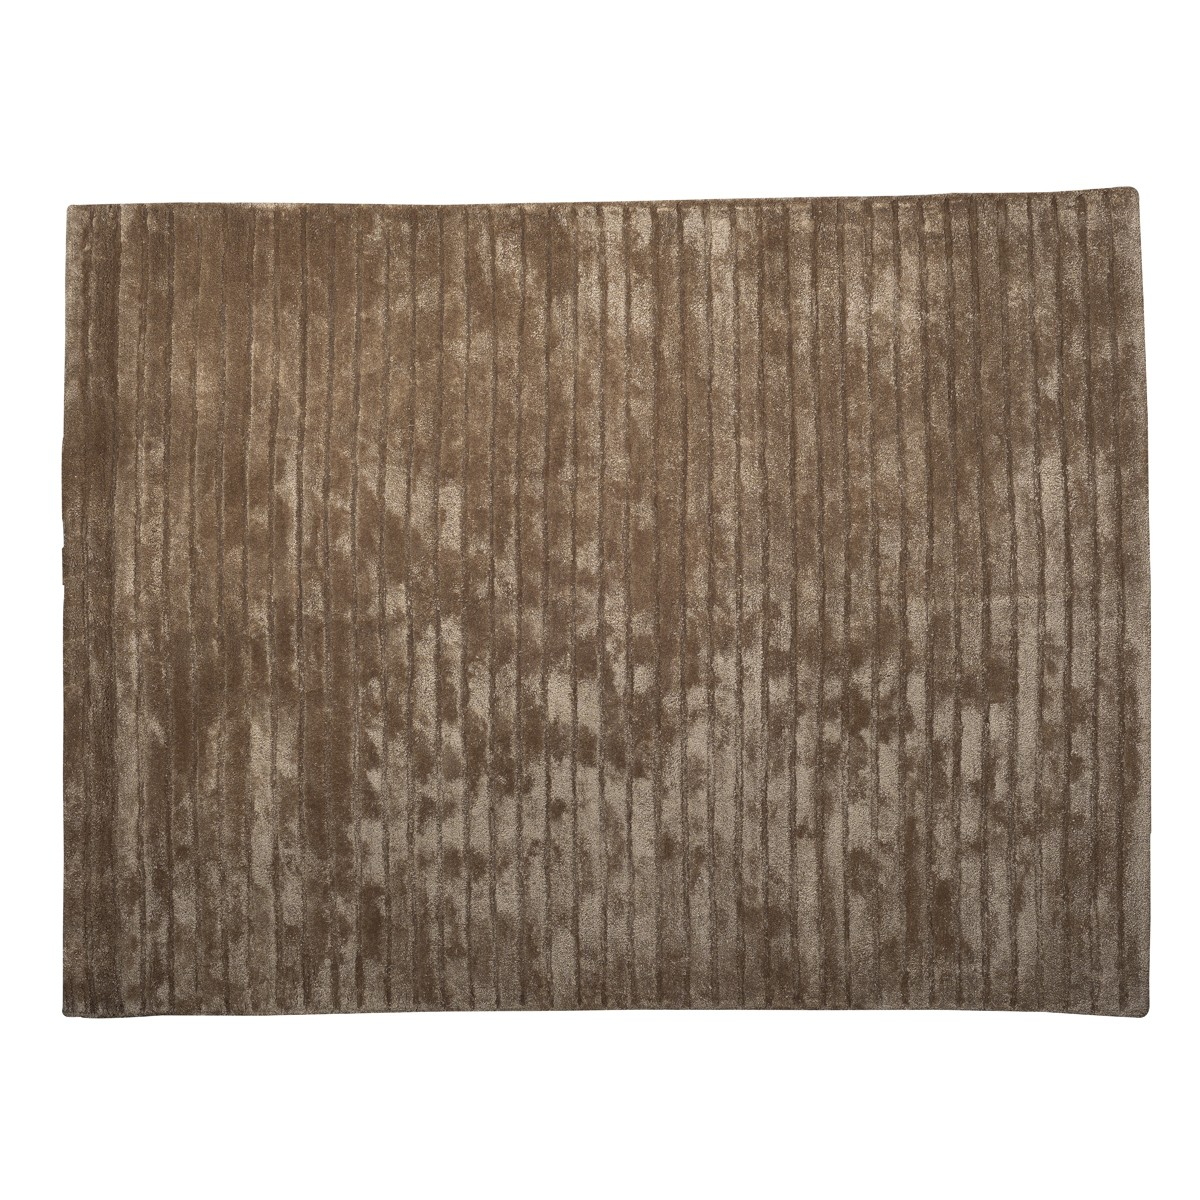 Bamboo - Large  Stripe Rug  in Taupe